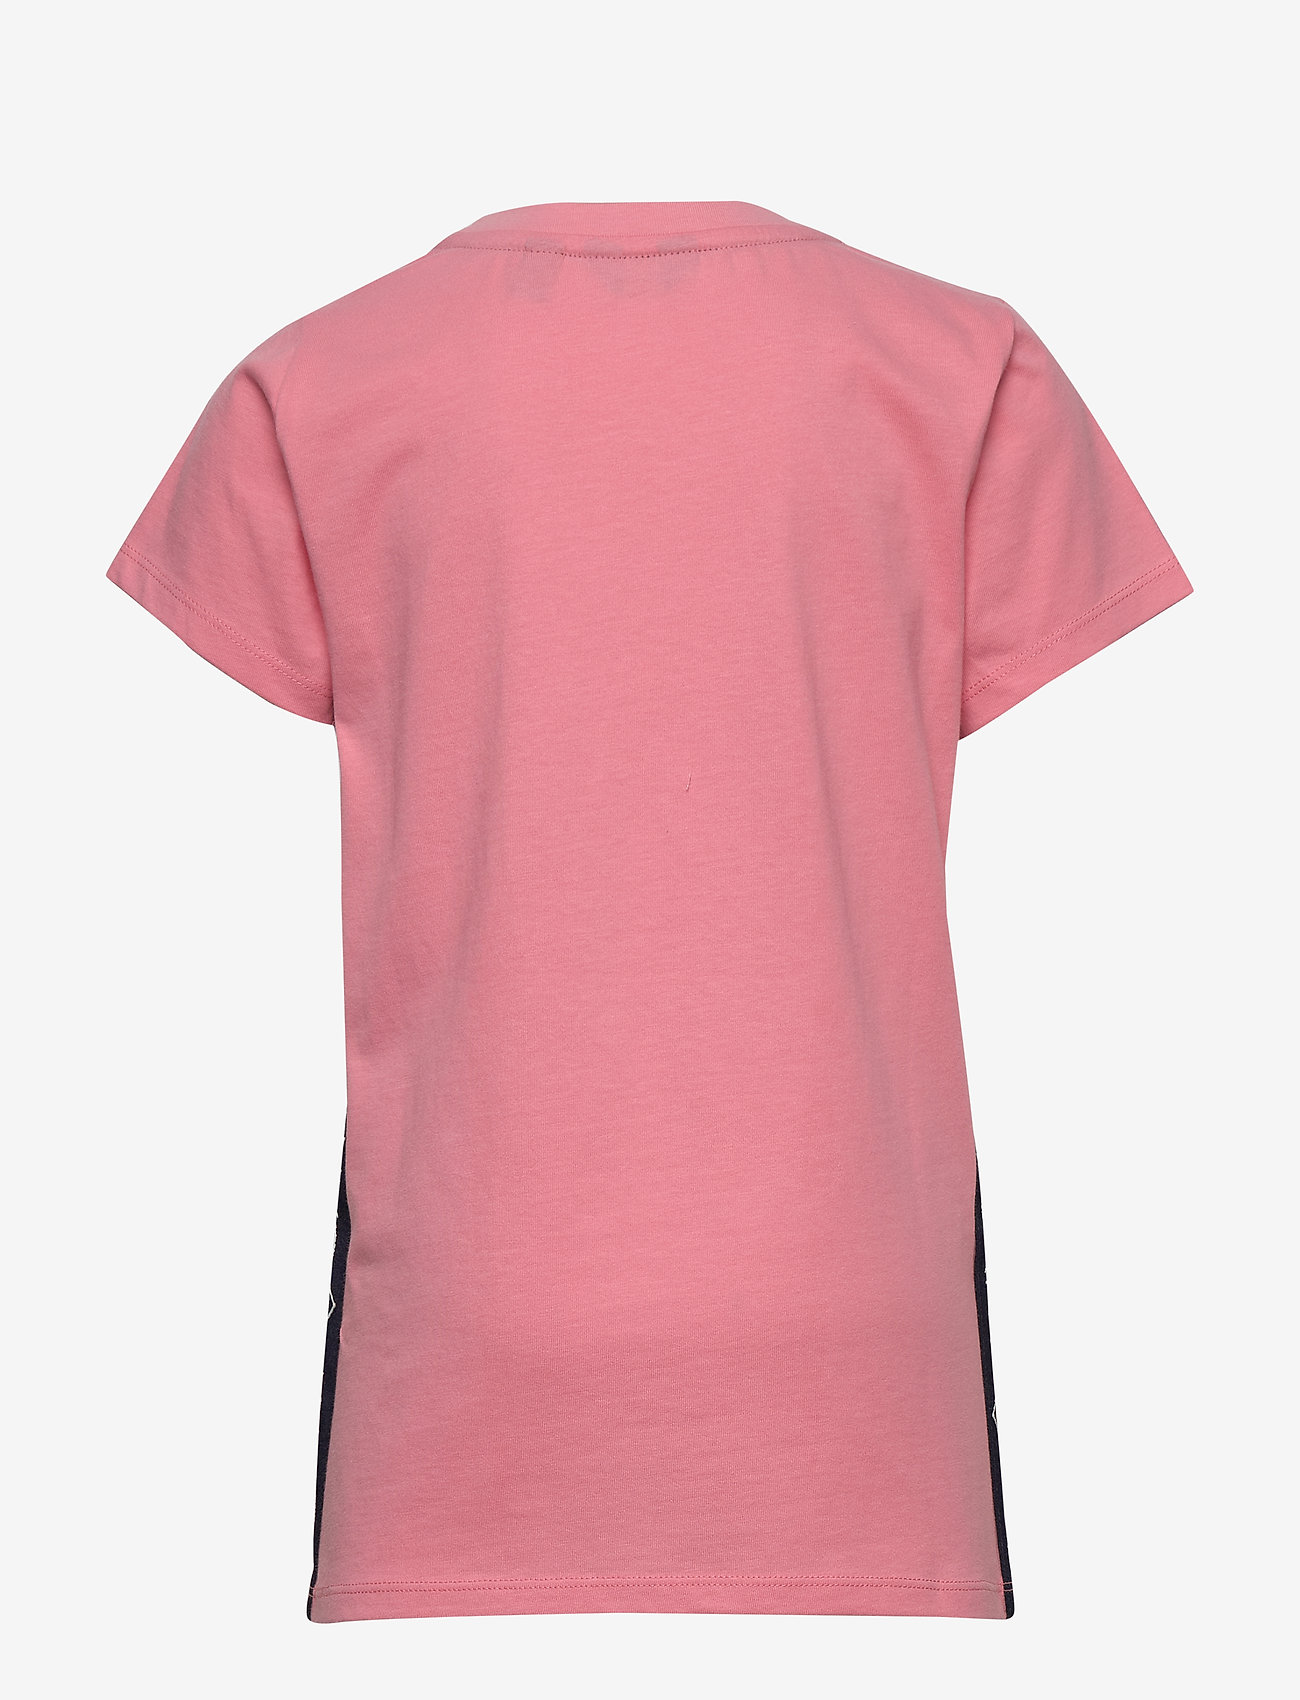 GANT - D1. LOCK UP STRIPE SS T-SHIRT - kurzärmelige - strawberry pink - 1